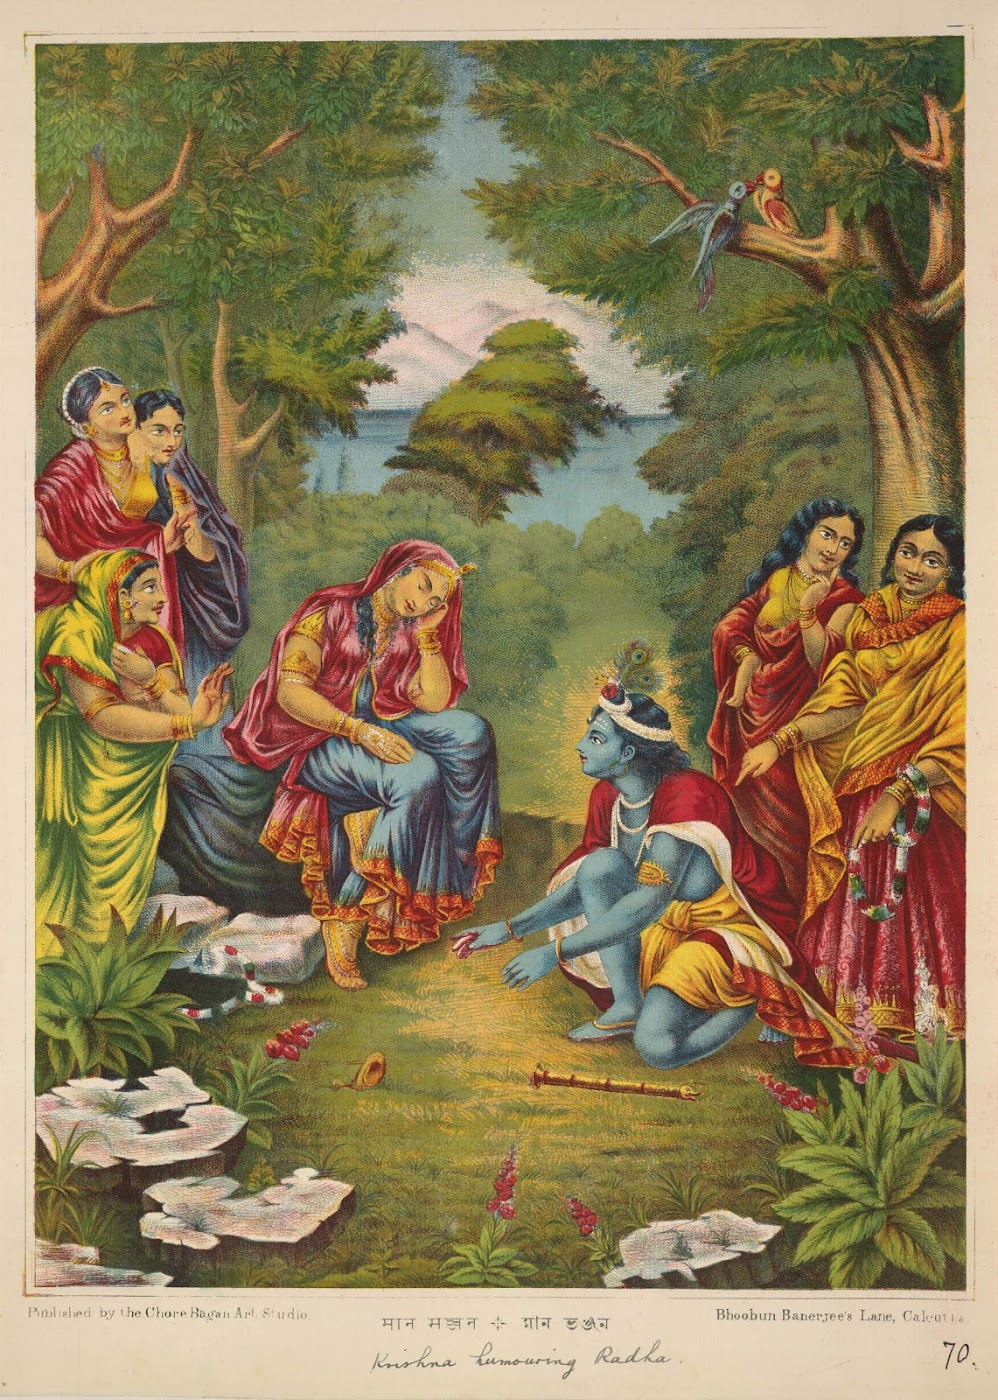 Radha is being Cajoled by the Playful Krishna - Lithograph Print, Chore Bagan Art Studio, Calcutta (Kolkata) Circa 1895